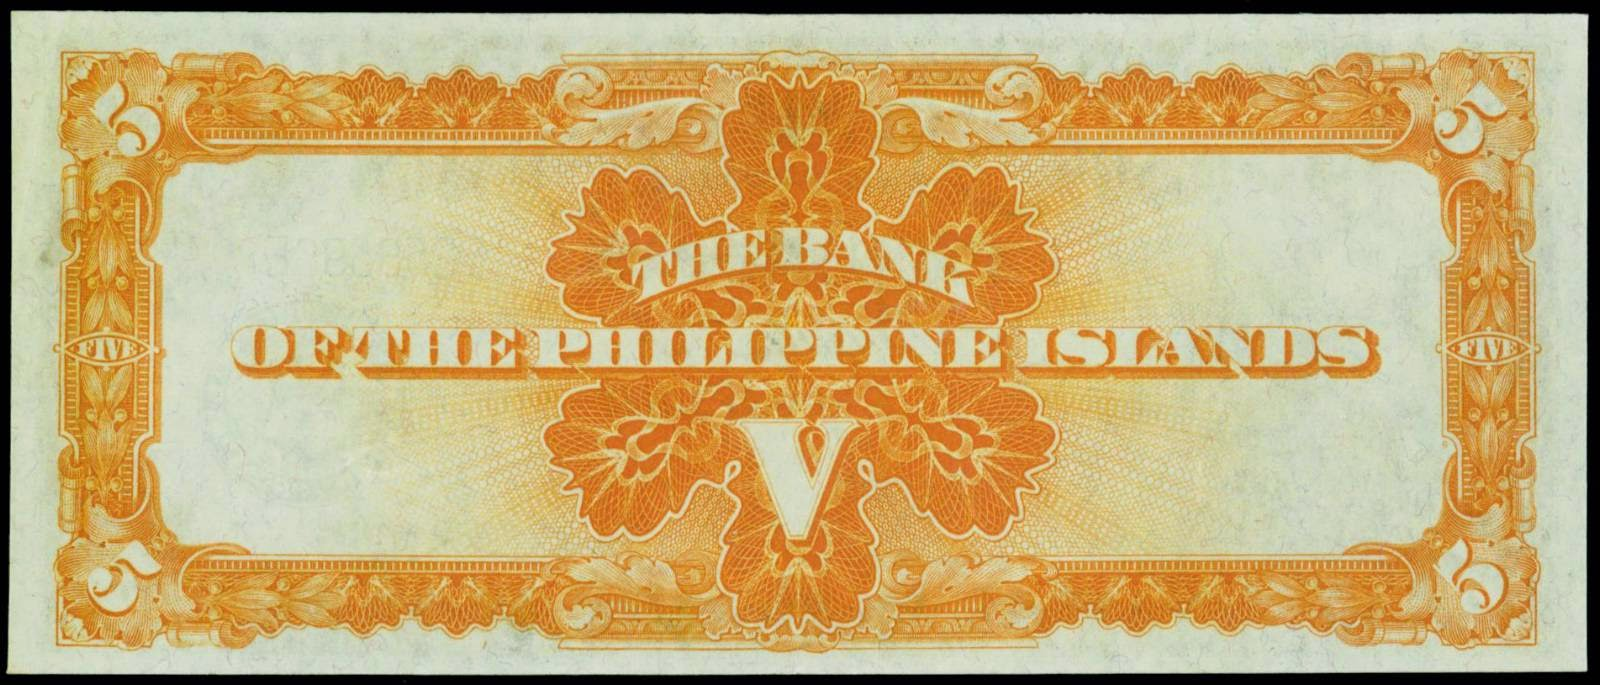 Philippine currency 5 Pesos Bank Note 1933